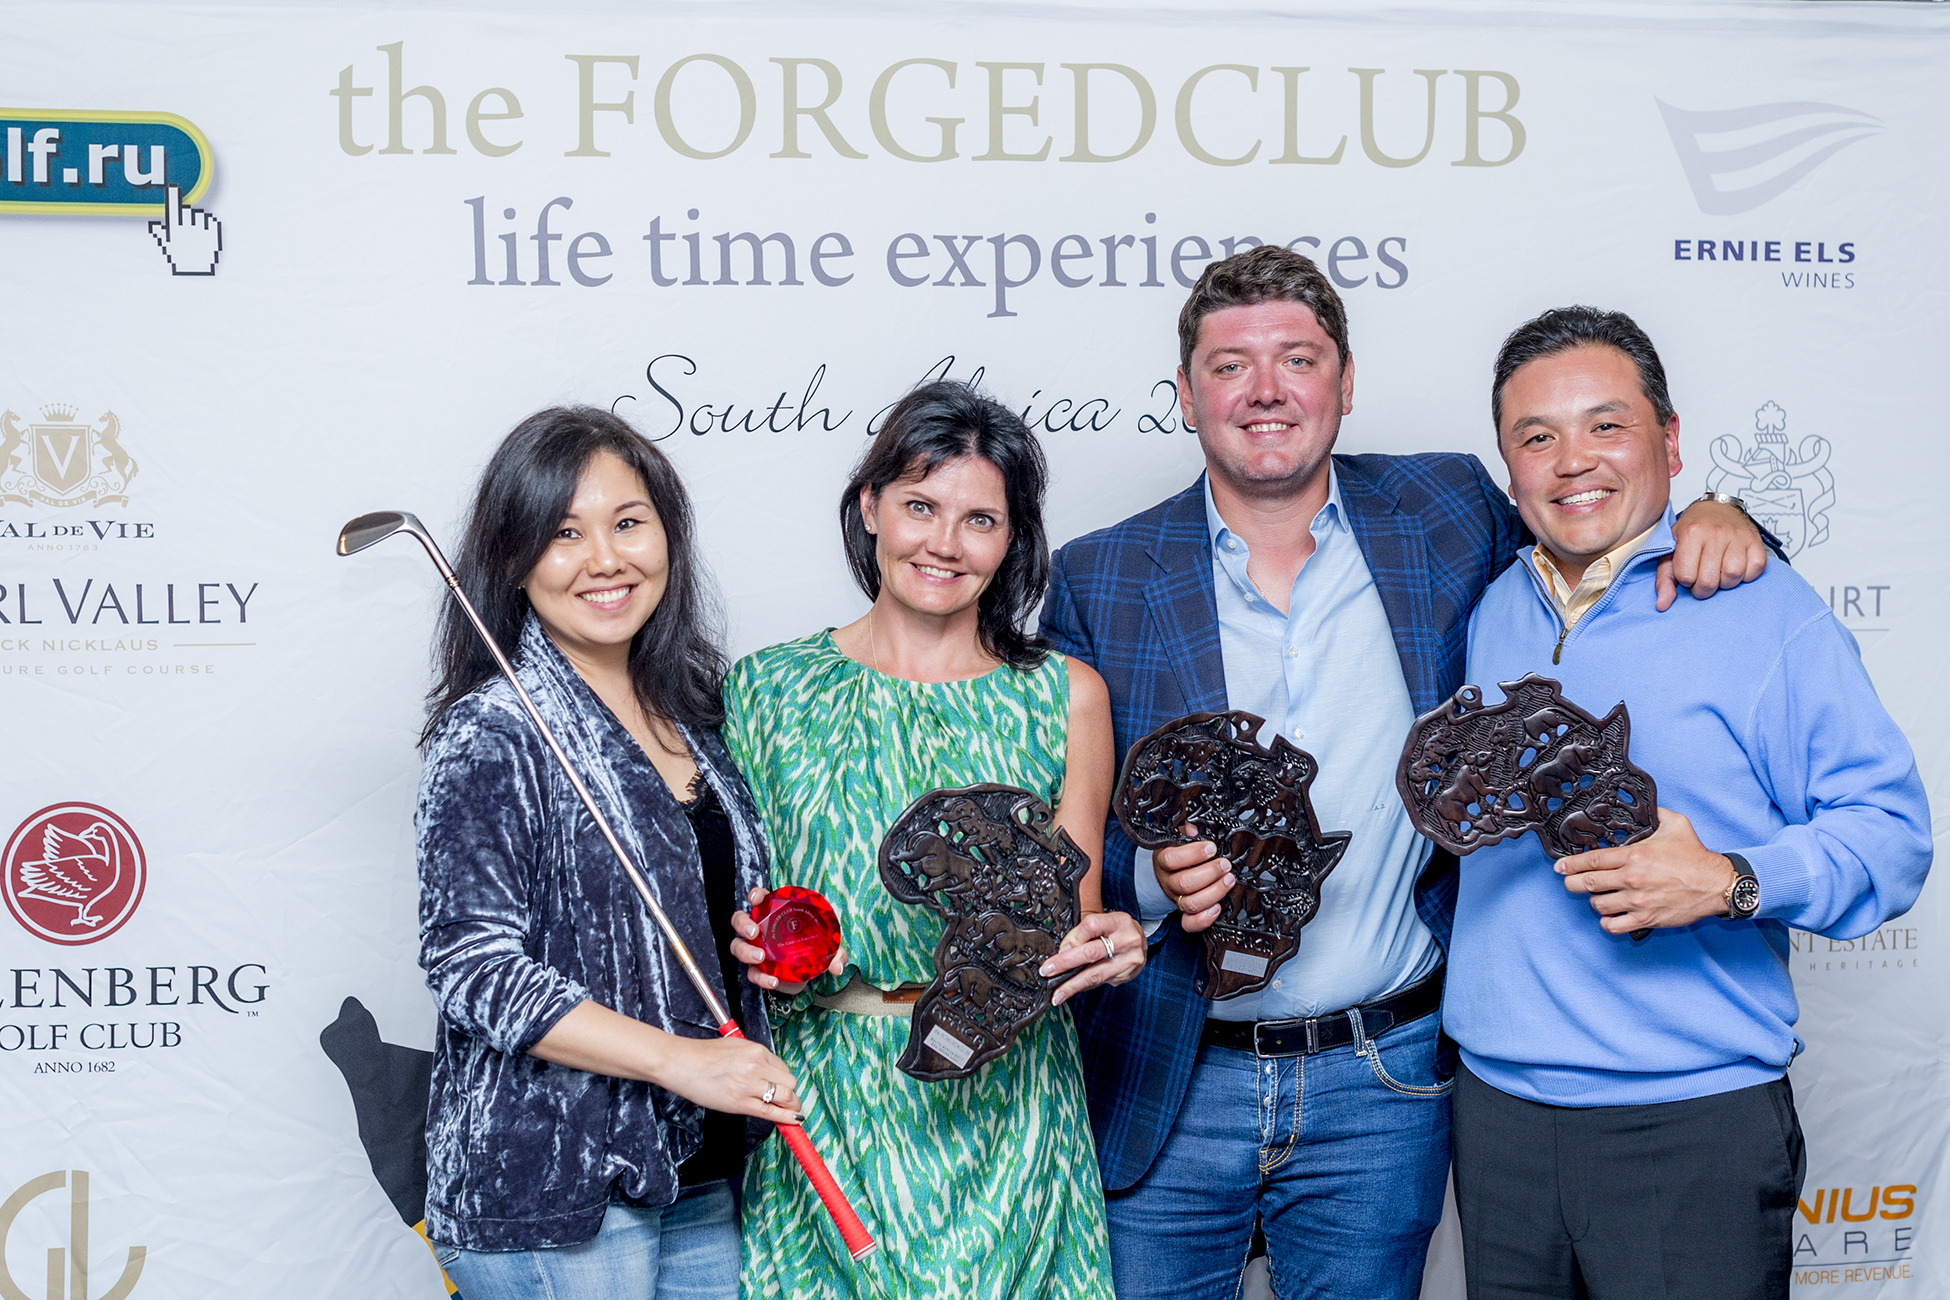 Forged Club 2017